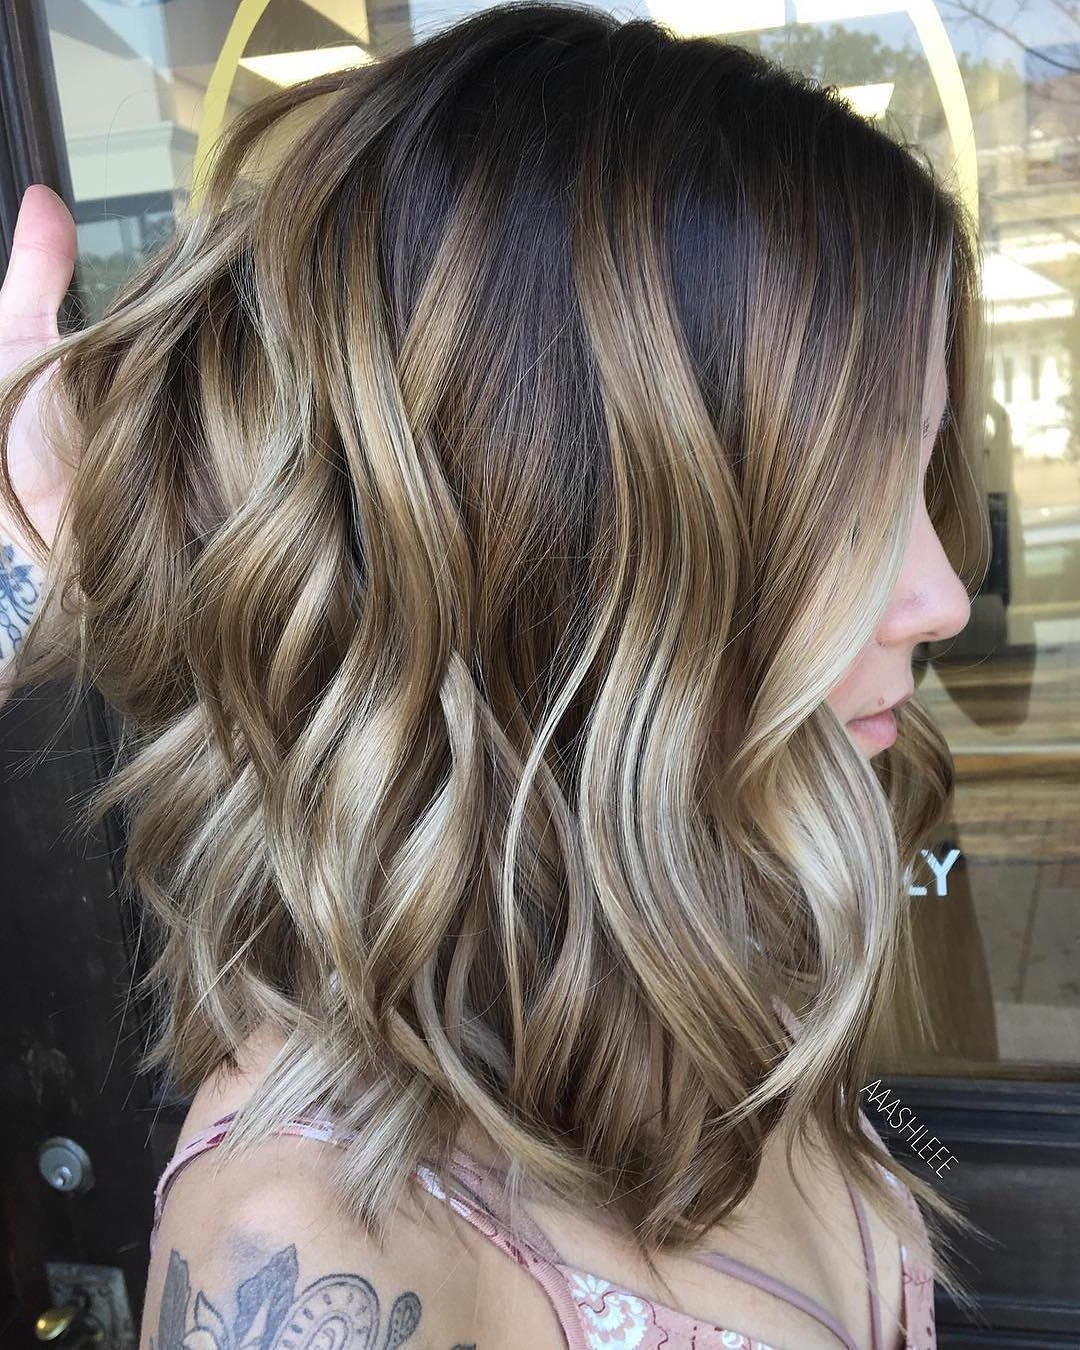 Recent Feathered Ash Blonde Hairstyles For 10 Ombre Balayage Hairstyles For Medium Length Hair, Hair Color (View 17 of 20)